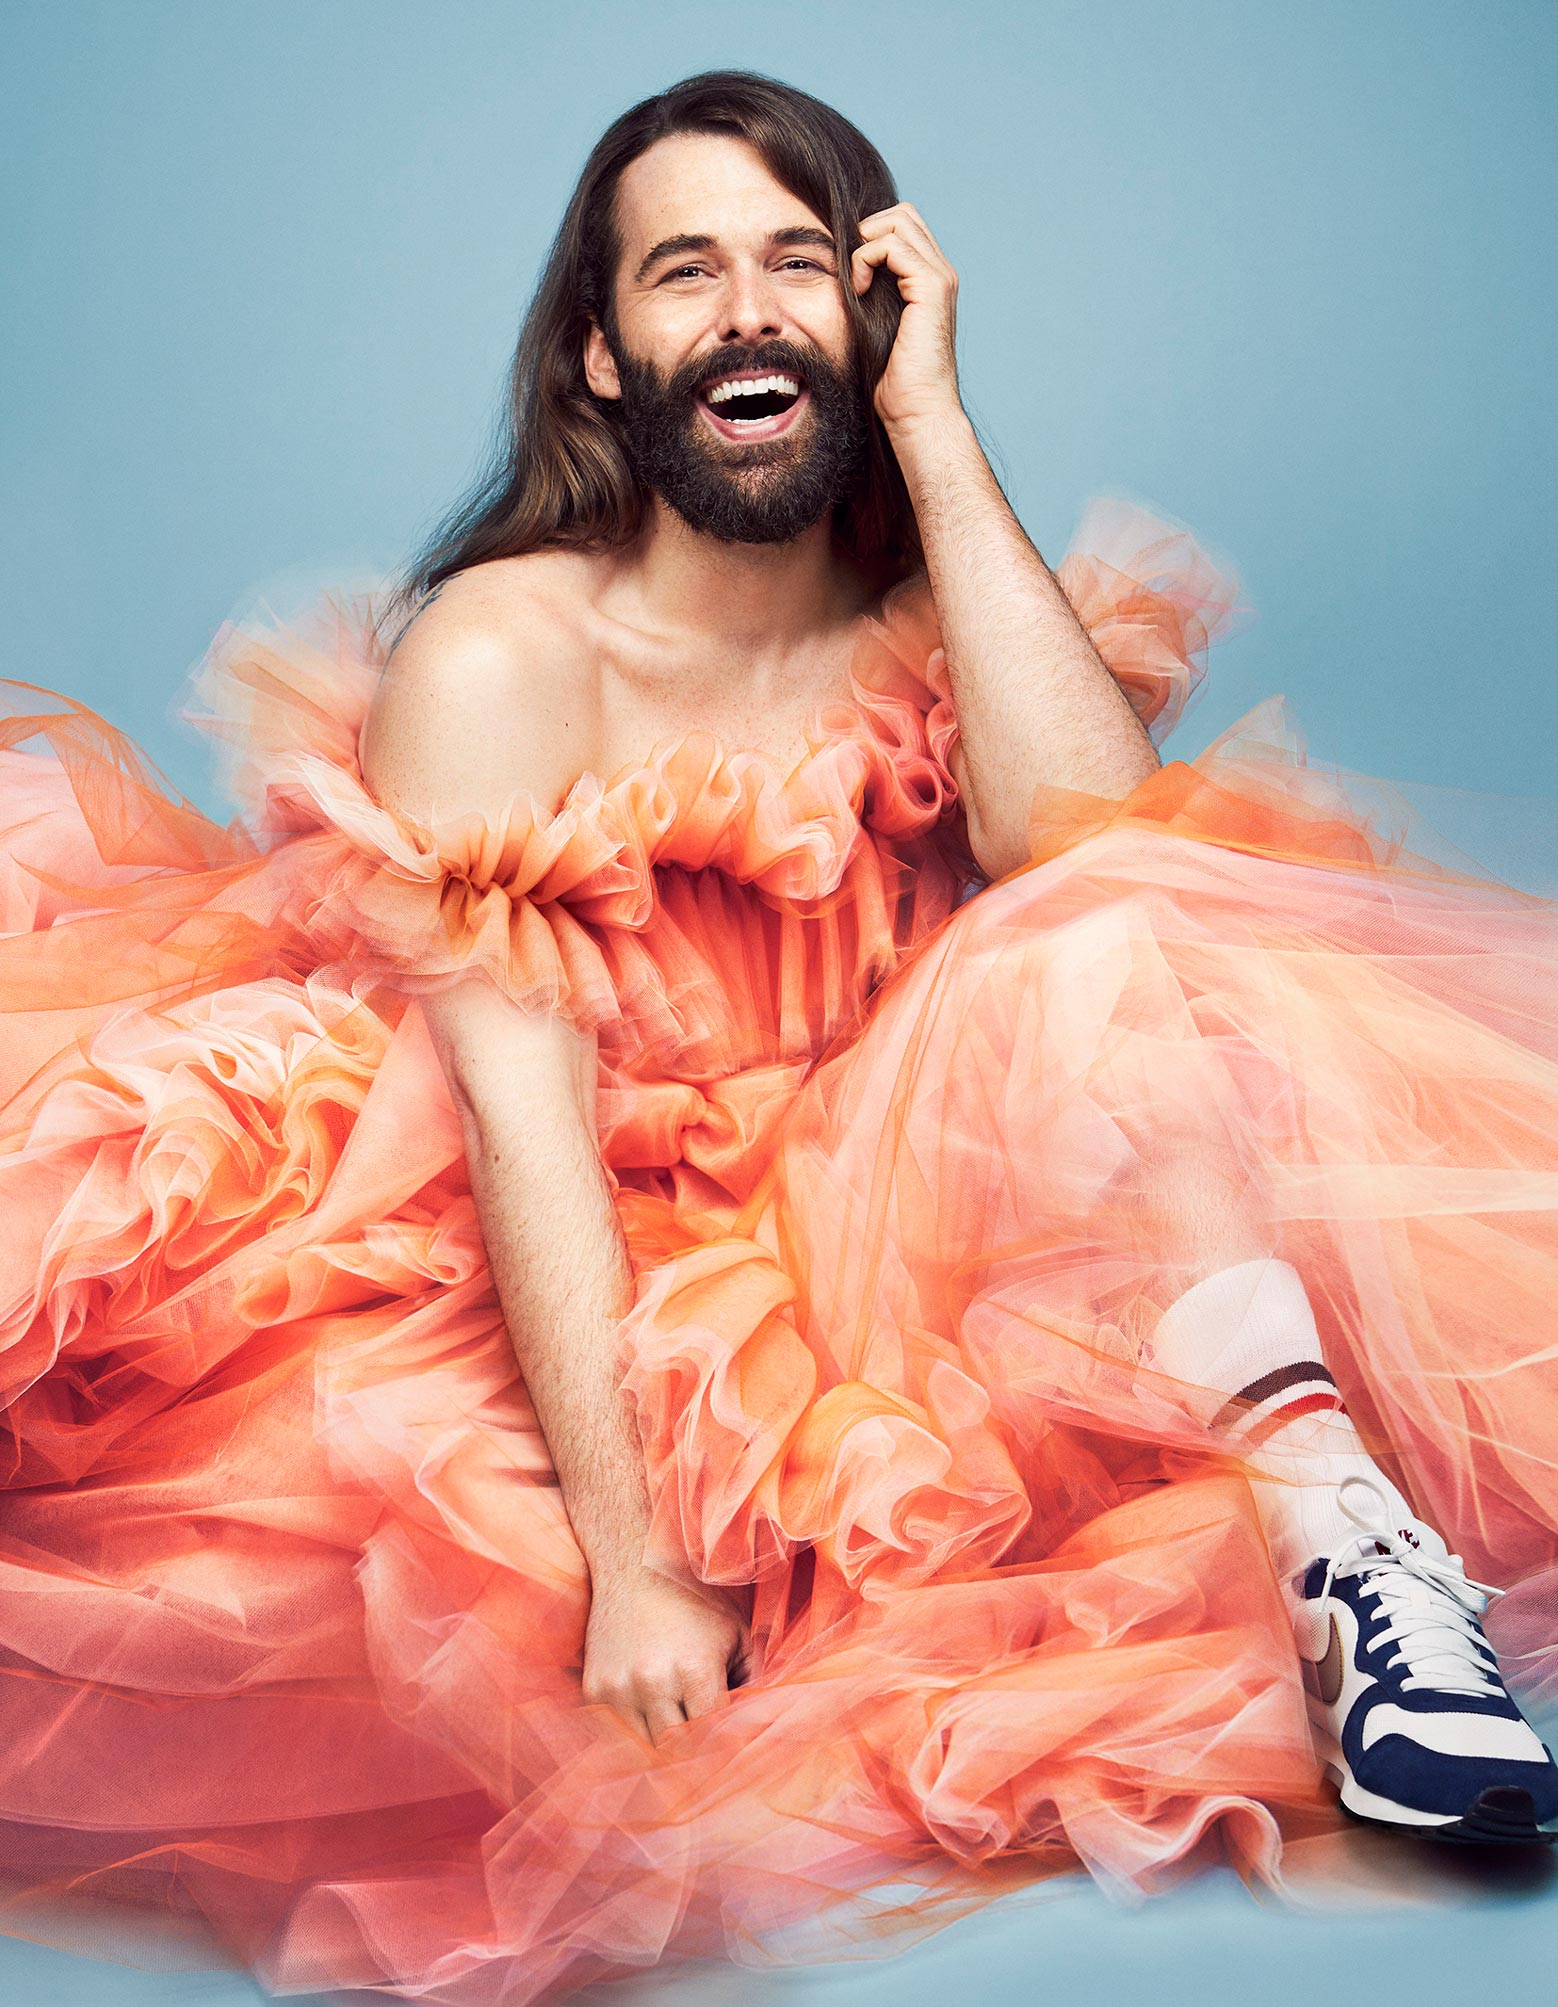 Bearded man in orange dress - Fashion photography by Rachell Smith